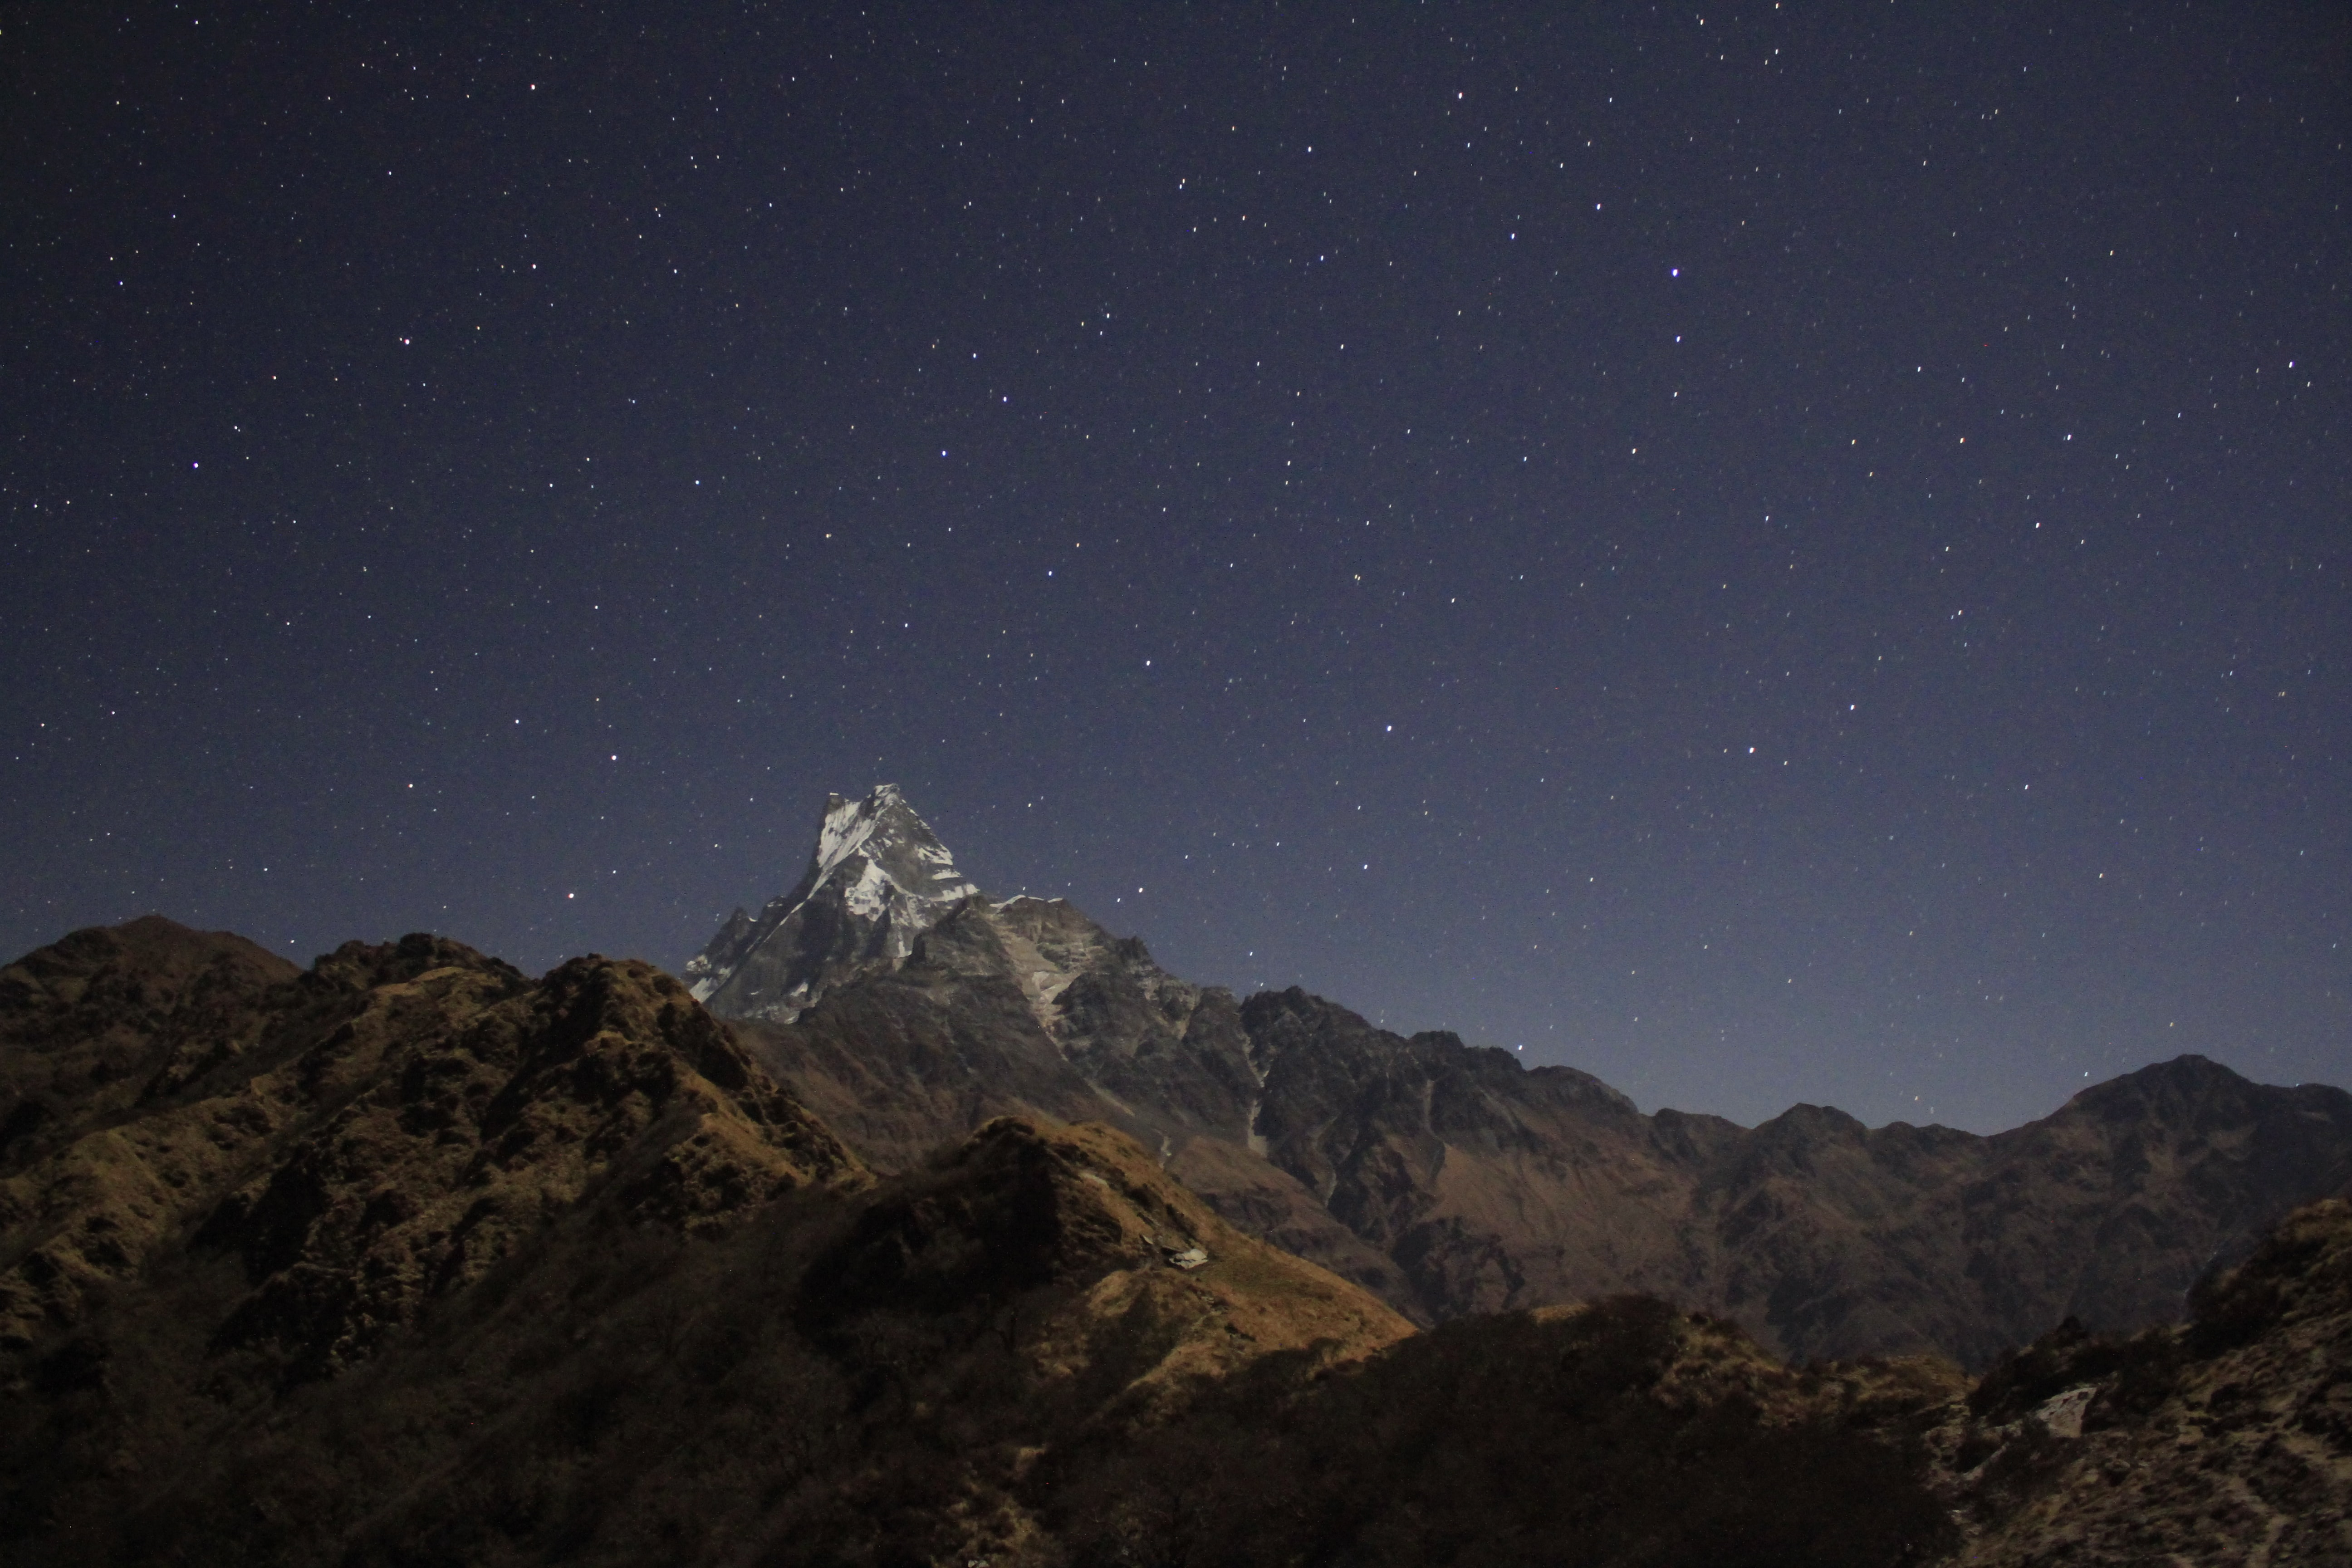 landscape photo of stars above brown mountain ridge